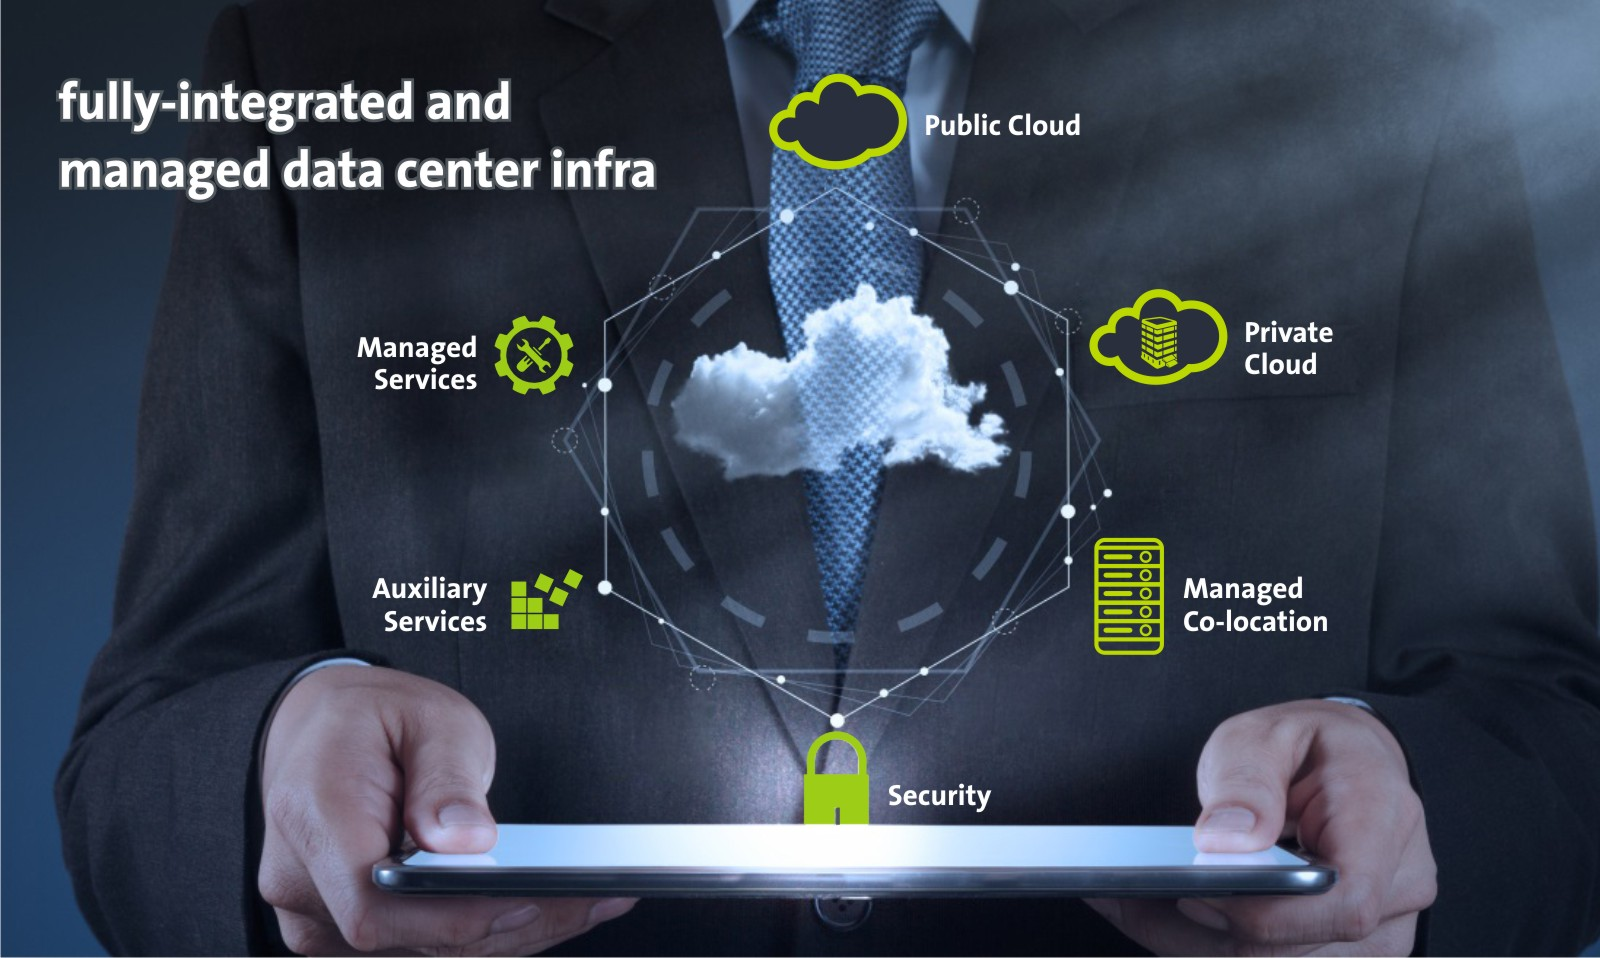 fully integrated and managed data center infra